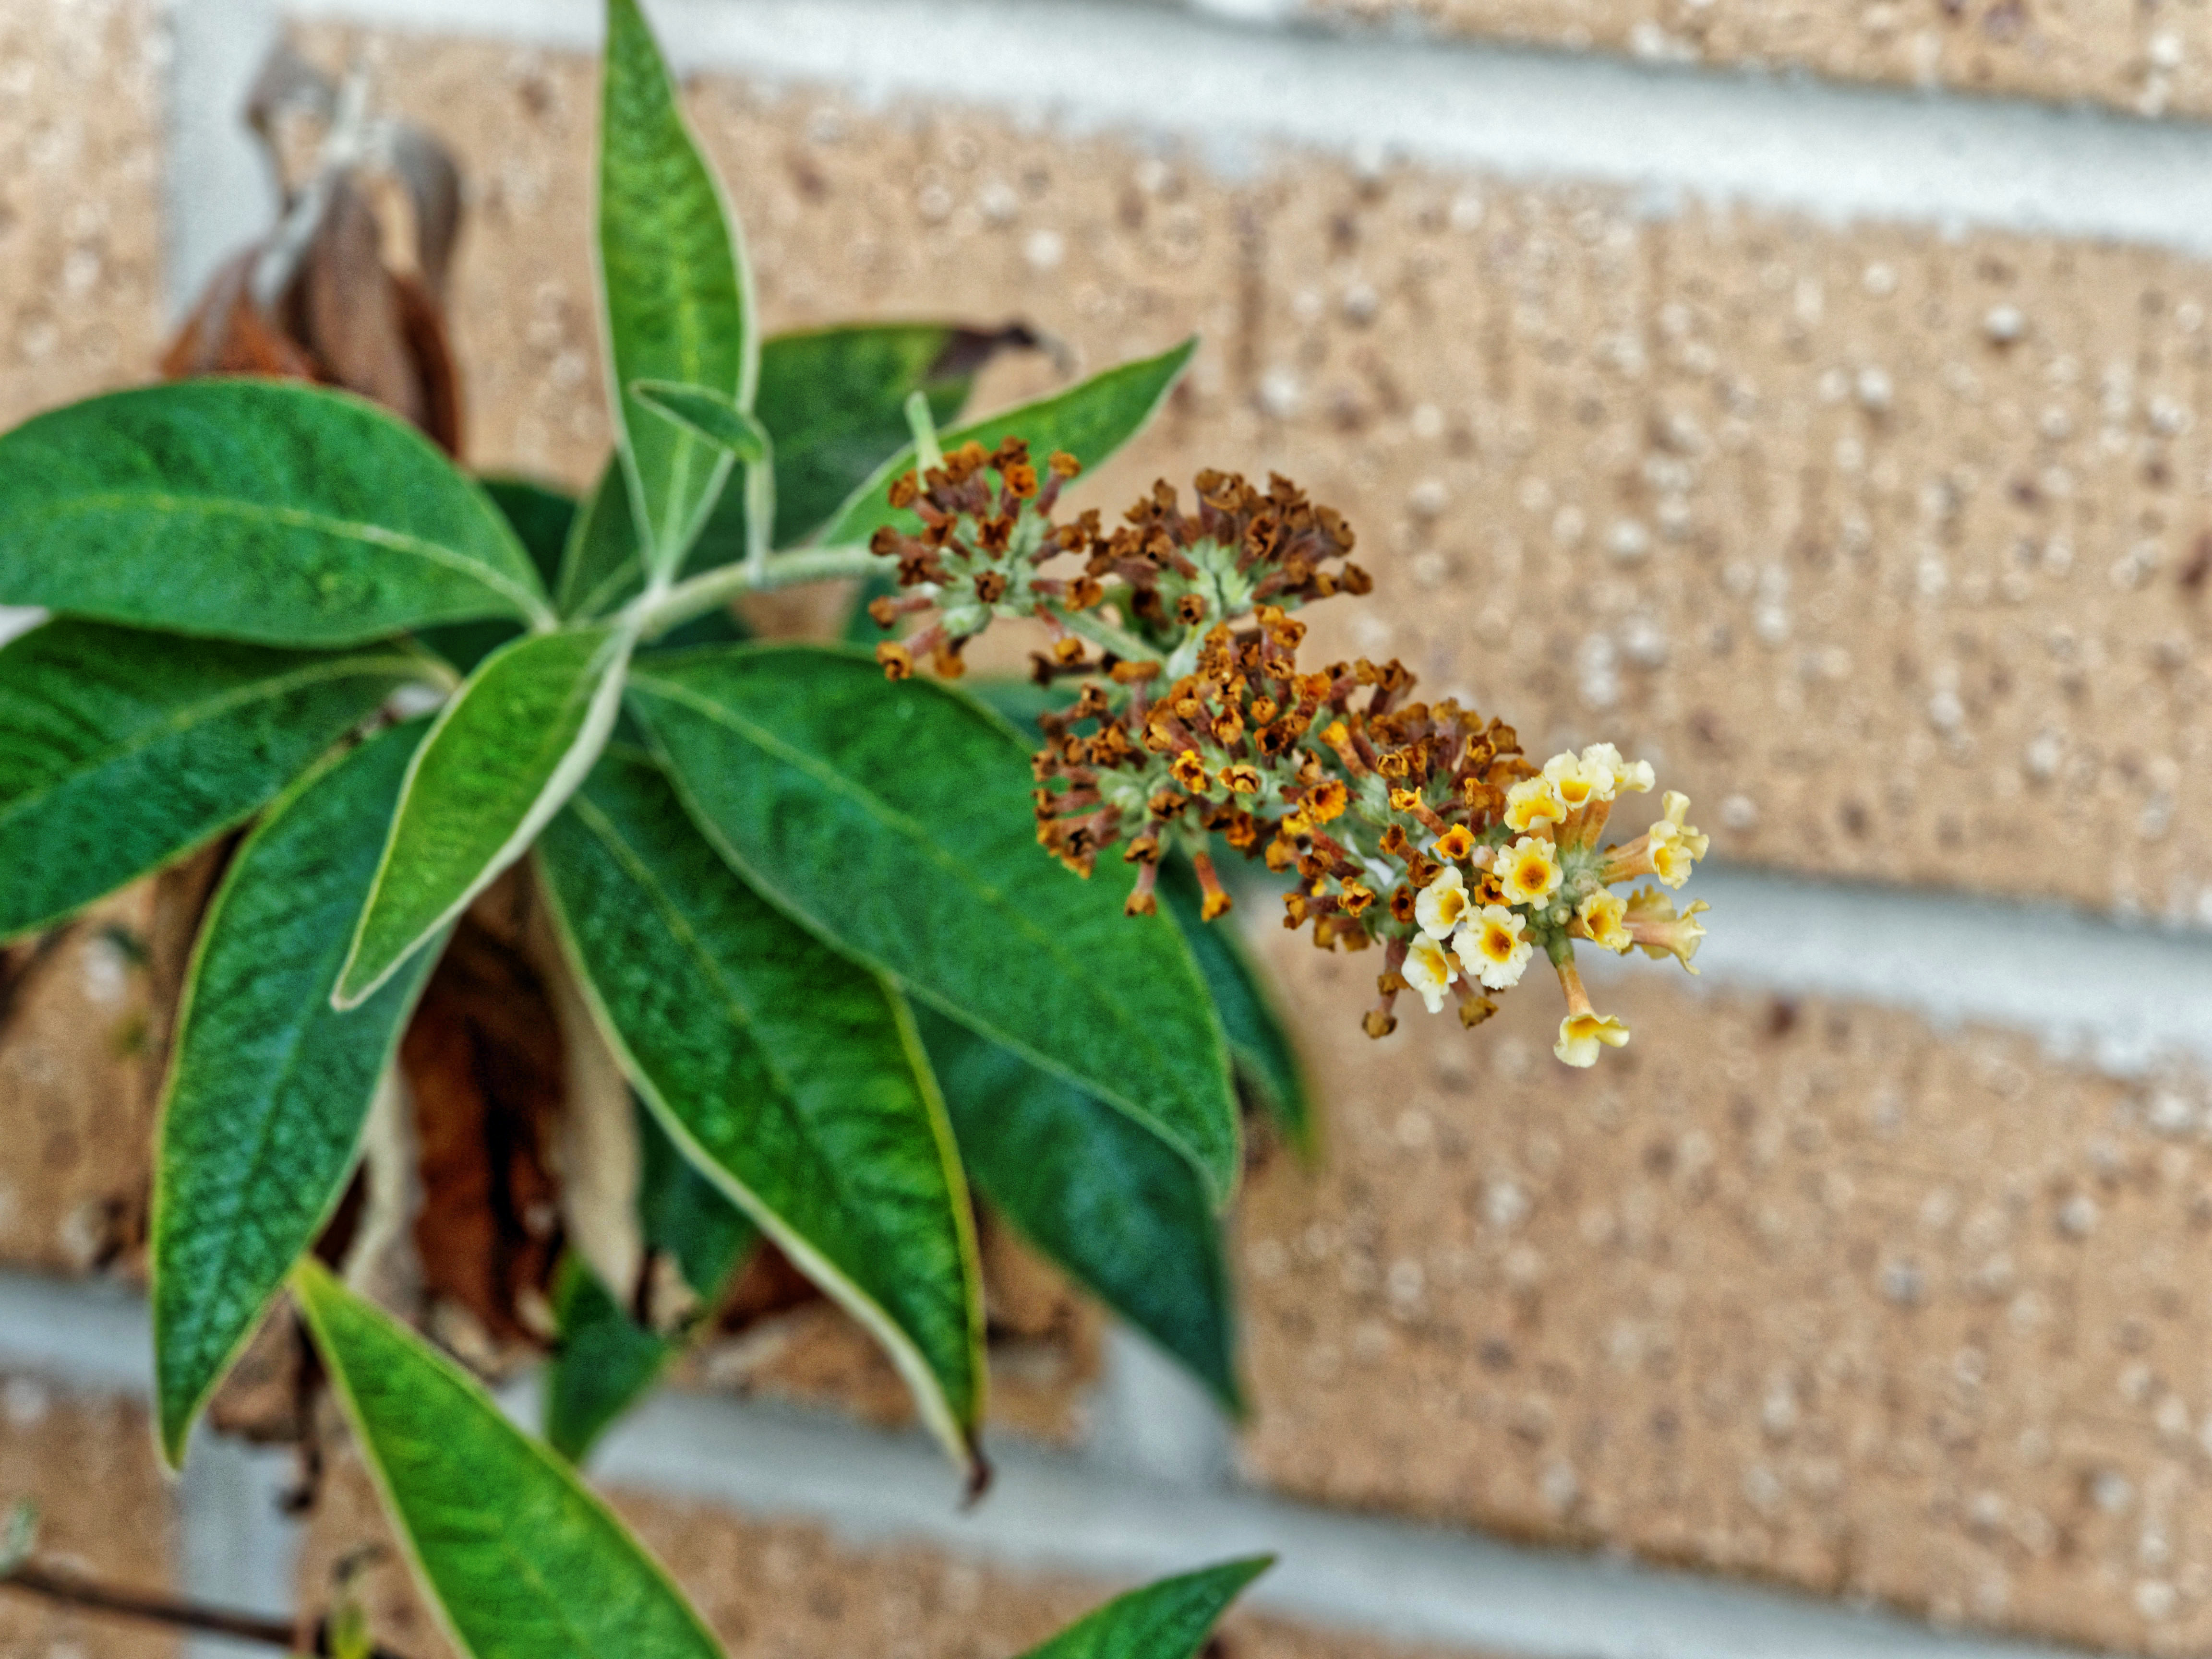 This should be Buddleja.jpeg.  Is it missing?